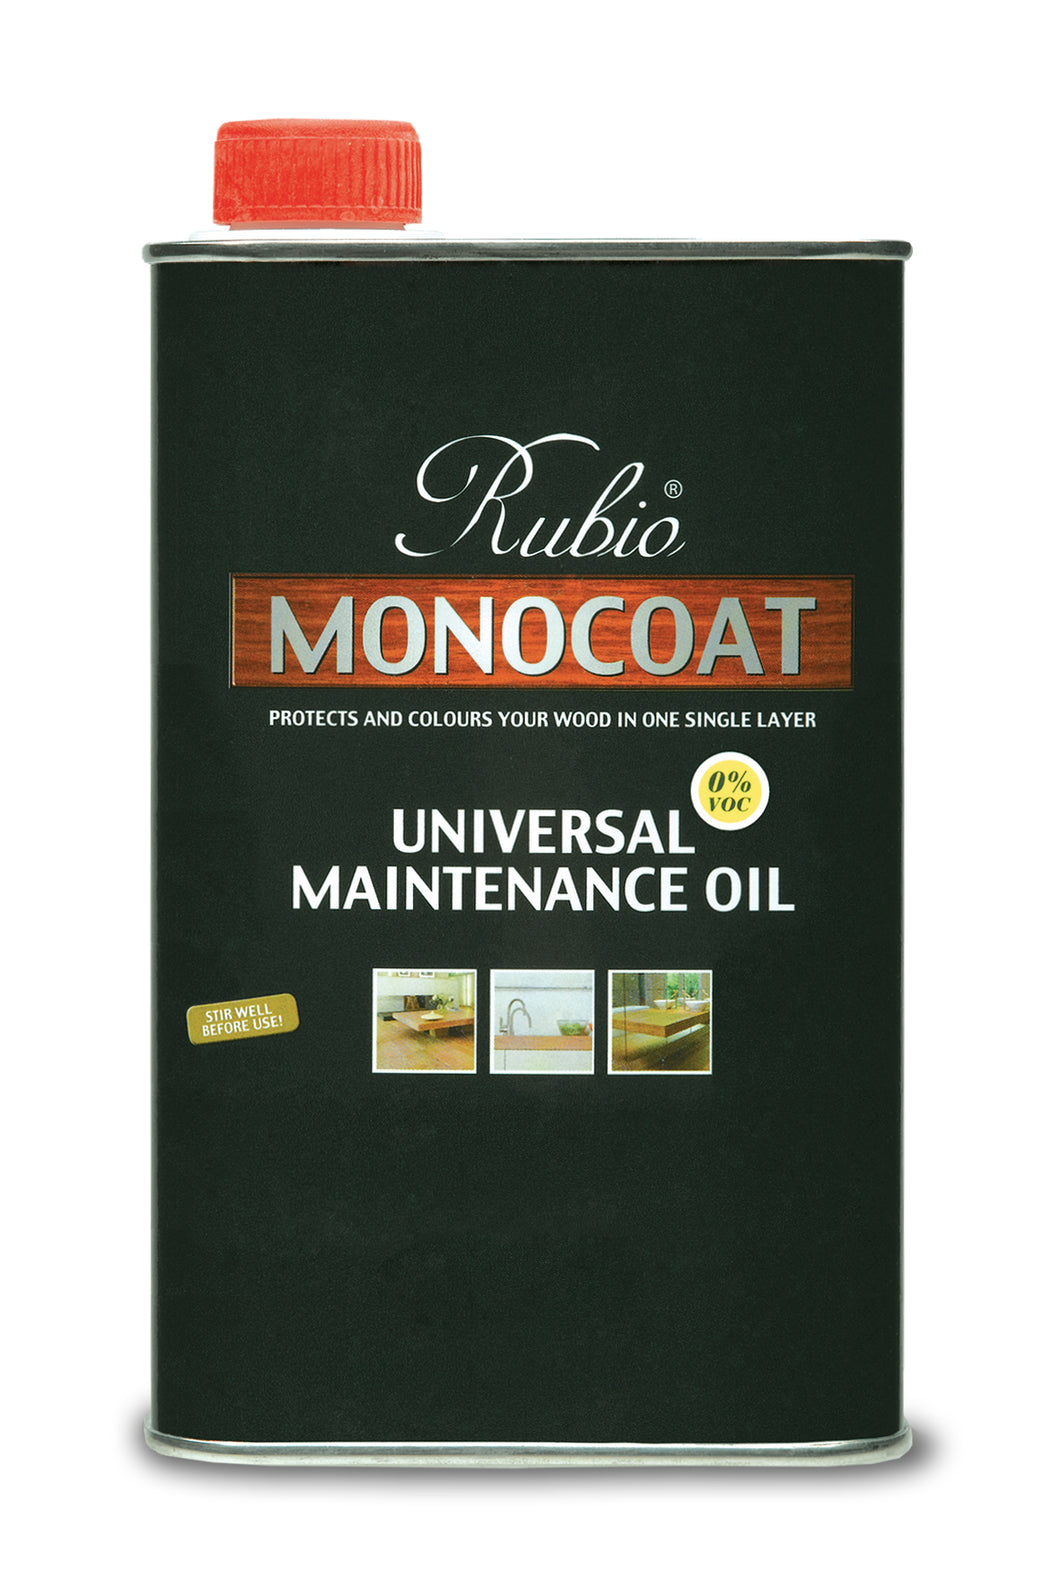 Rubio Monocoat Wood Stain Universal Maintenance Oil Black